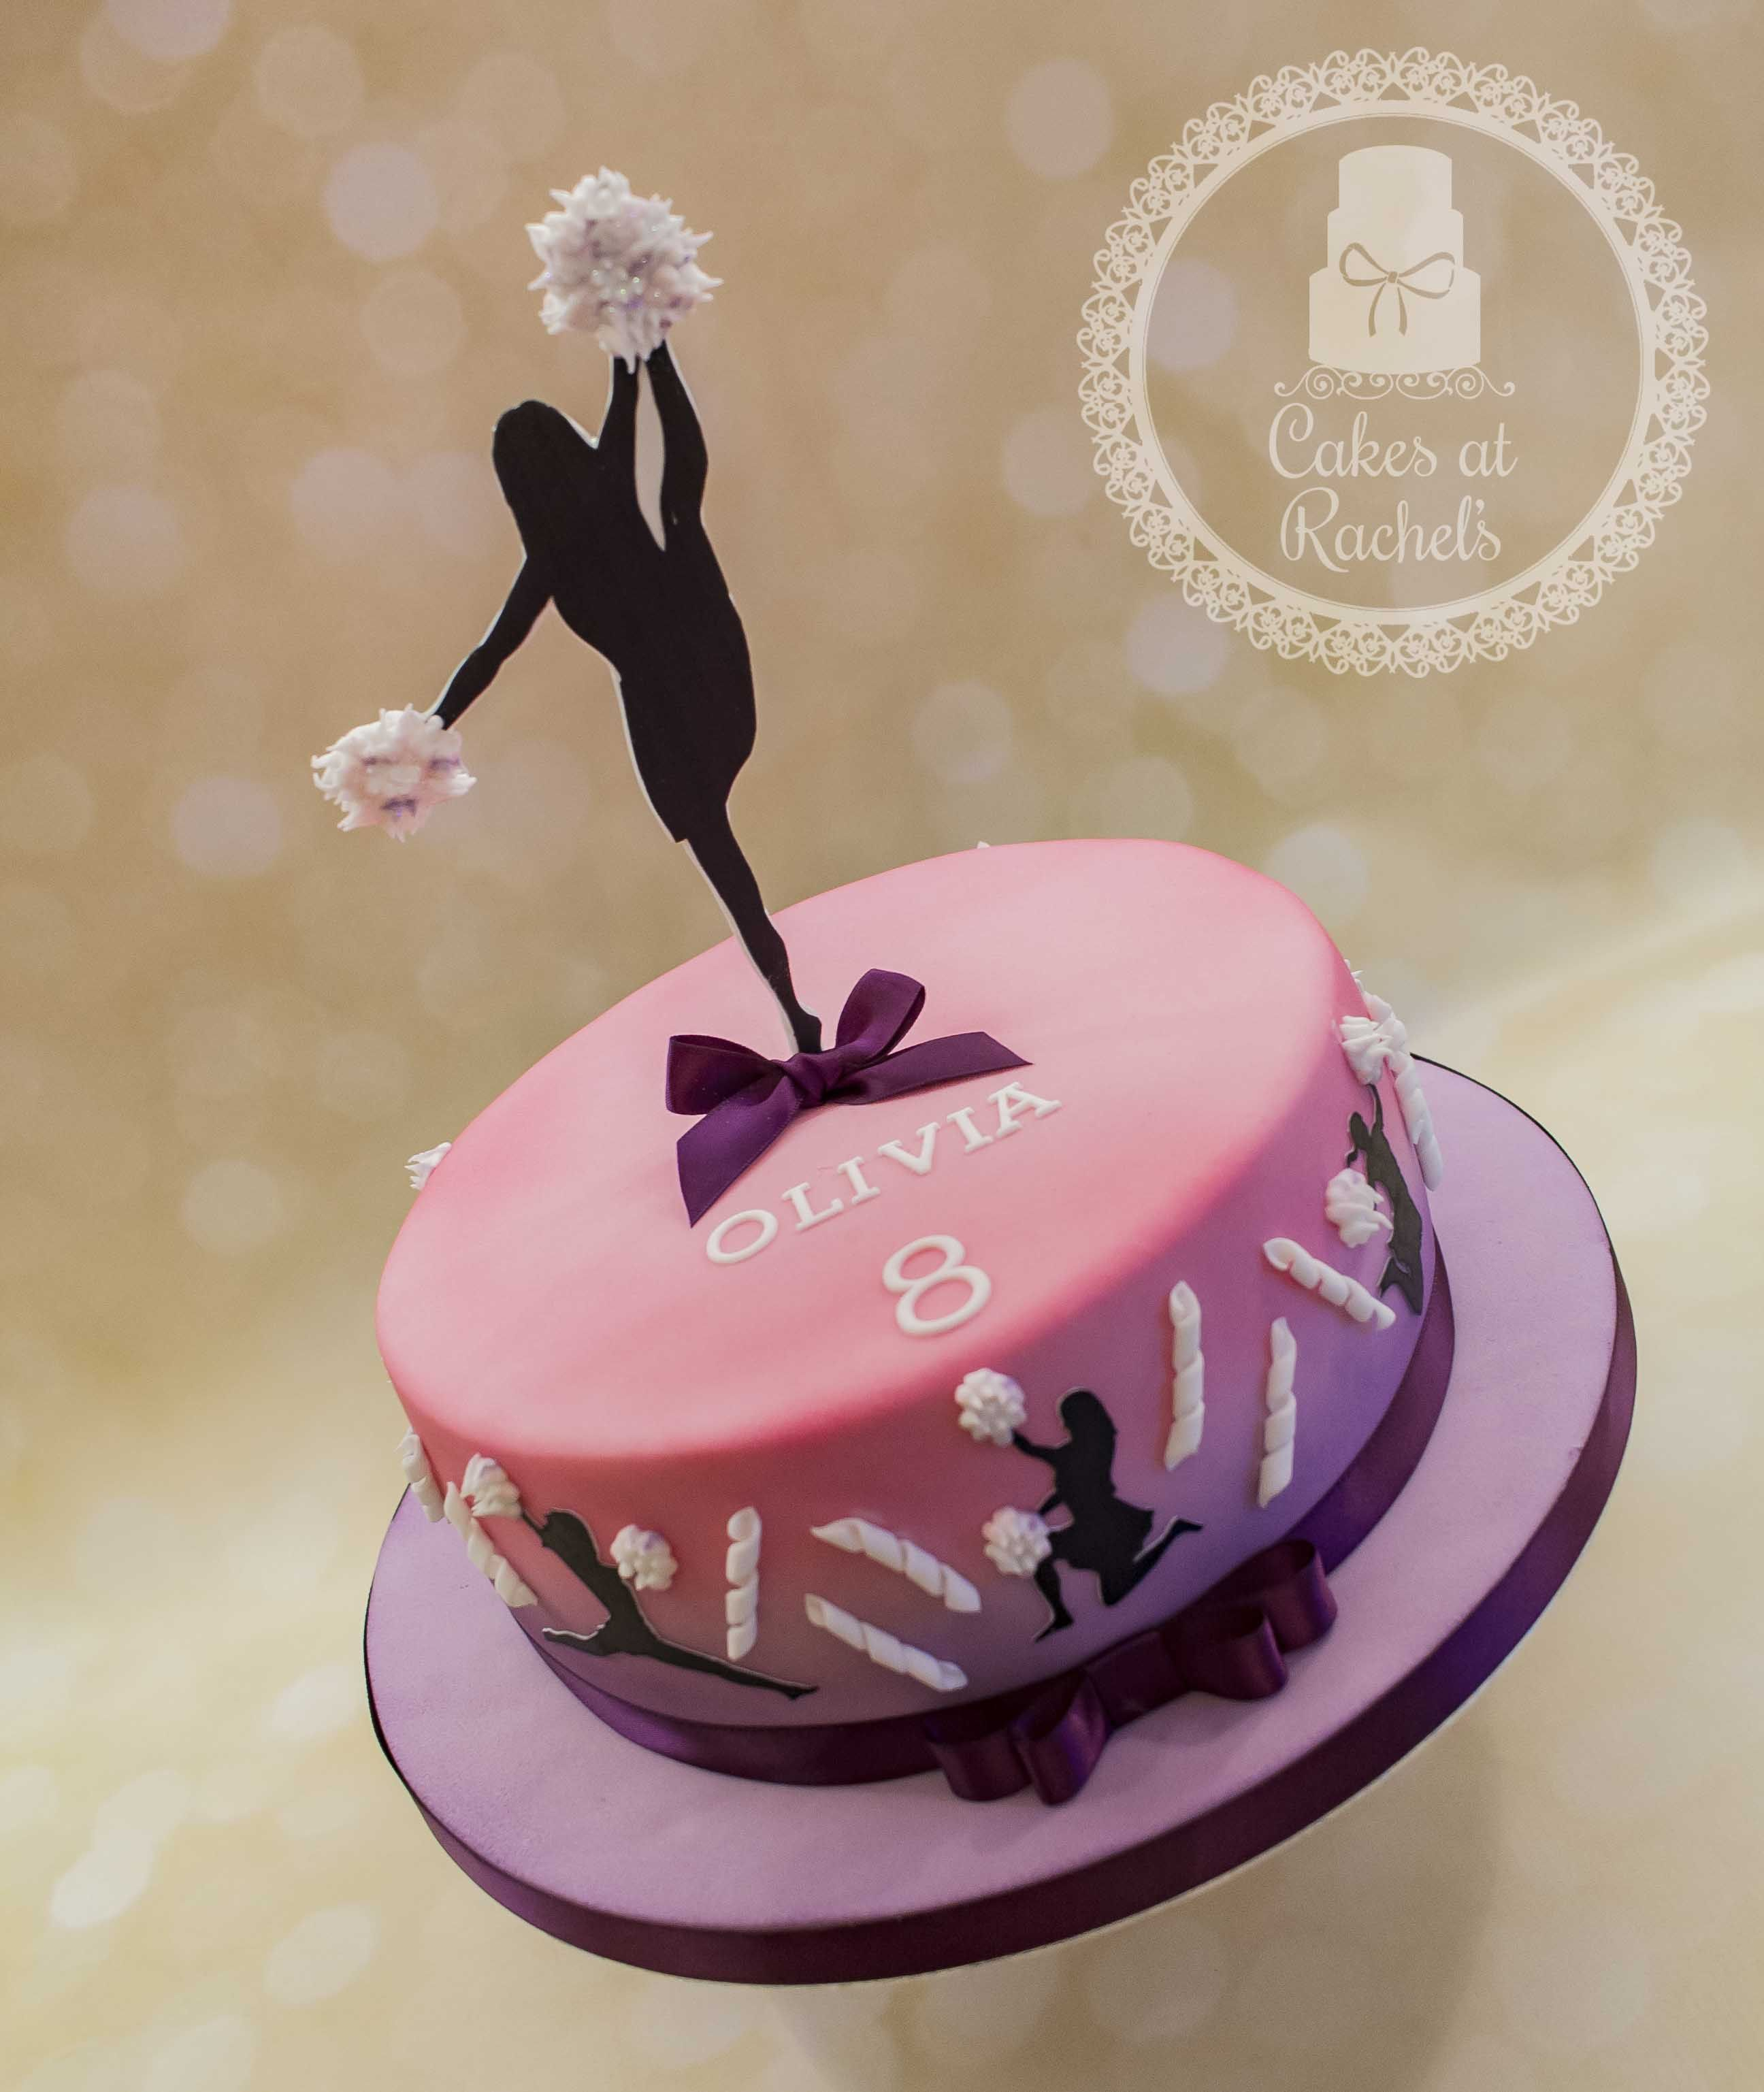 Awesome Cheerleader Cake Facebook Com Cakes At Rachels With Images Personalised Birthday Cards Veneteletsinfo